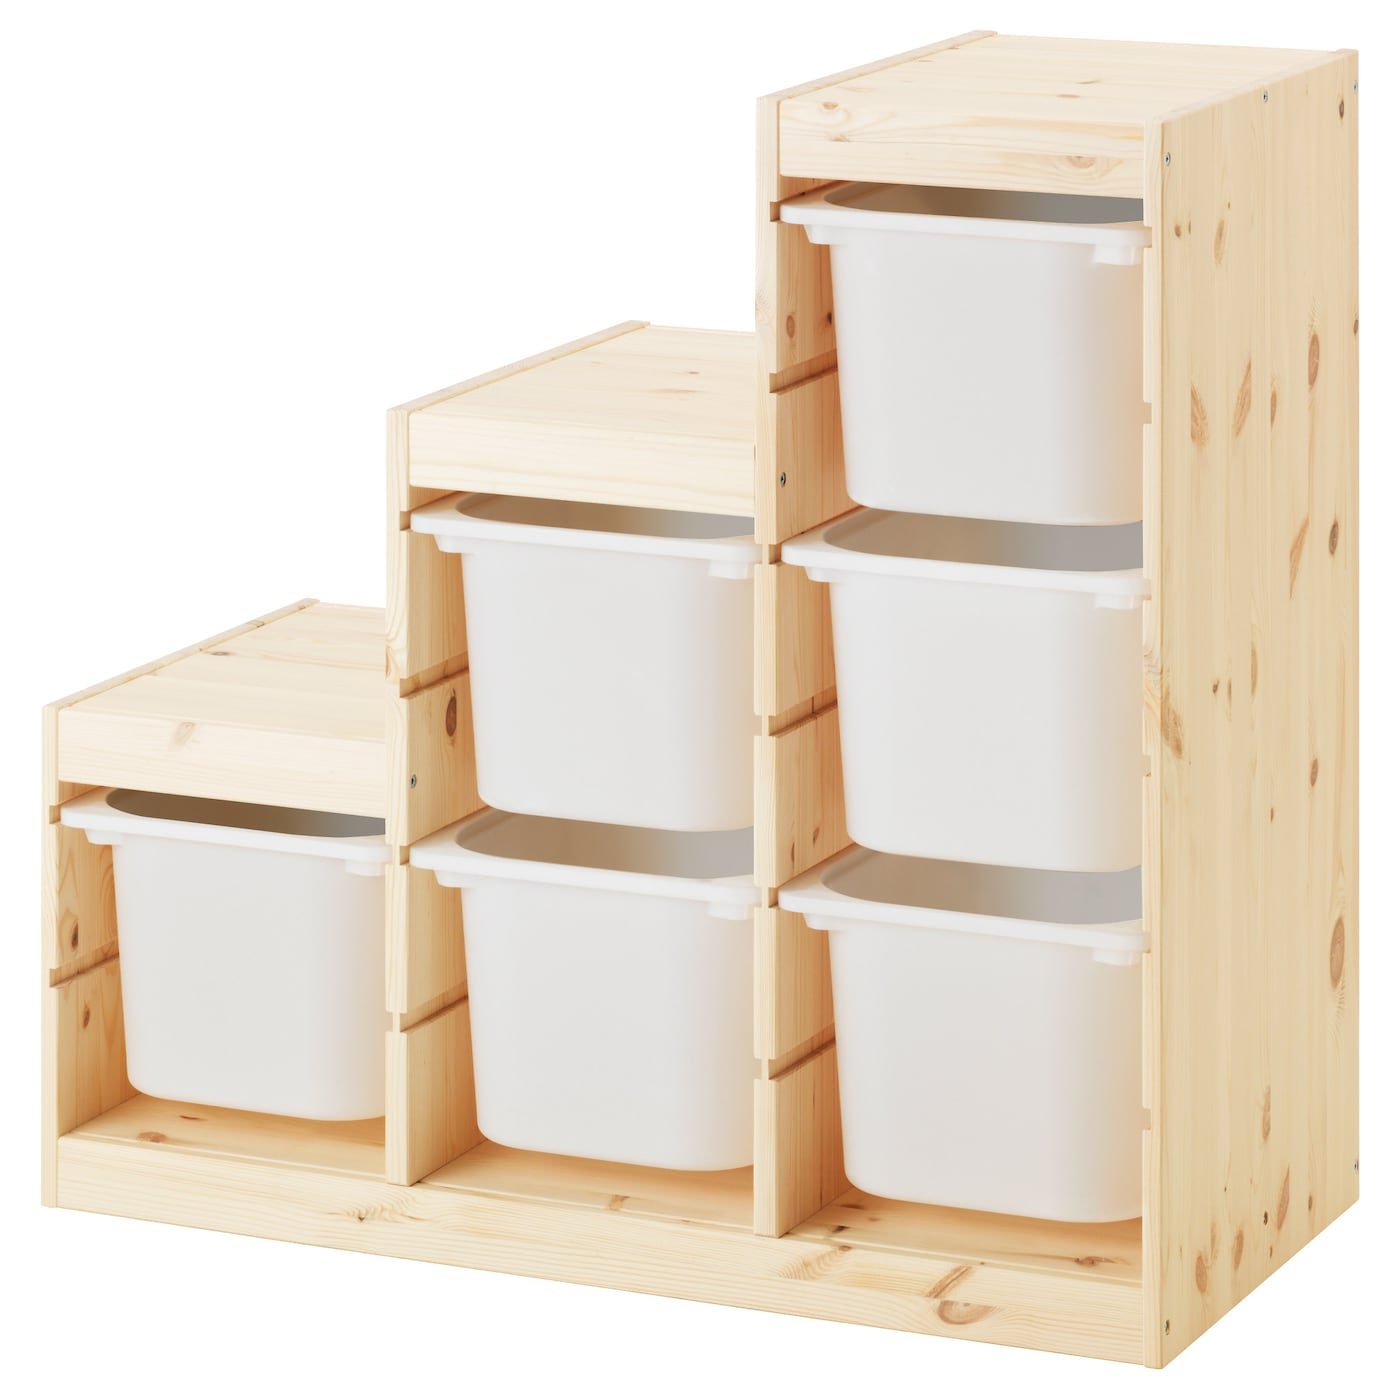 trofast storage combination light white stained pine white 94x44x91 cm ikea. Black Bedroom Furniture Sets. Home Design Ideas